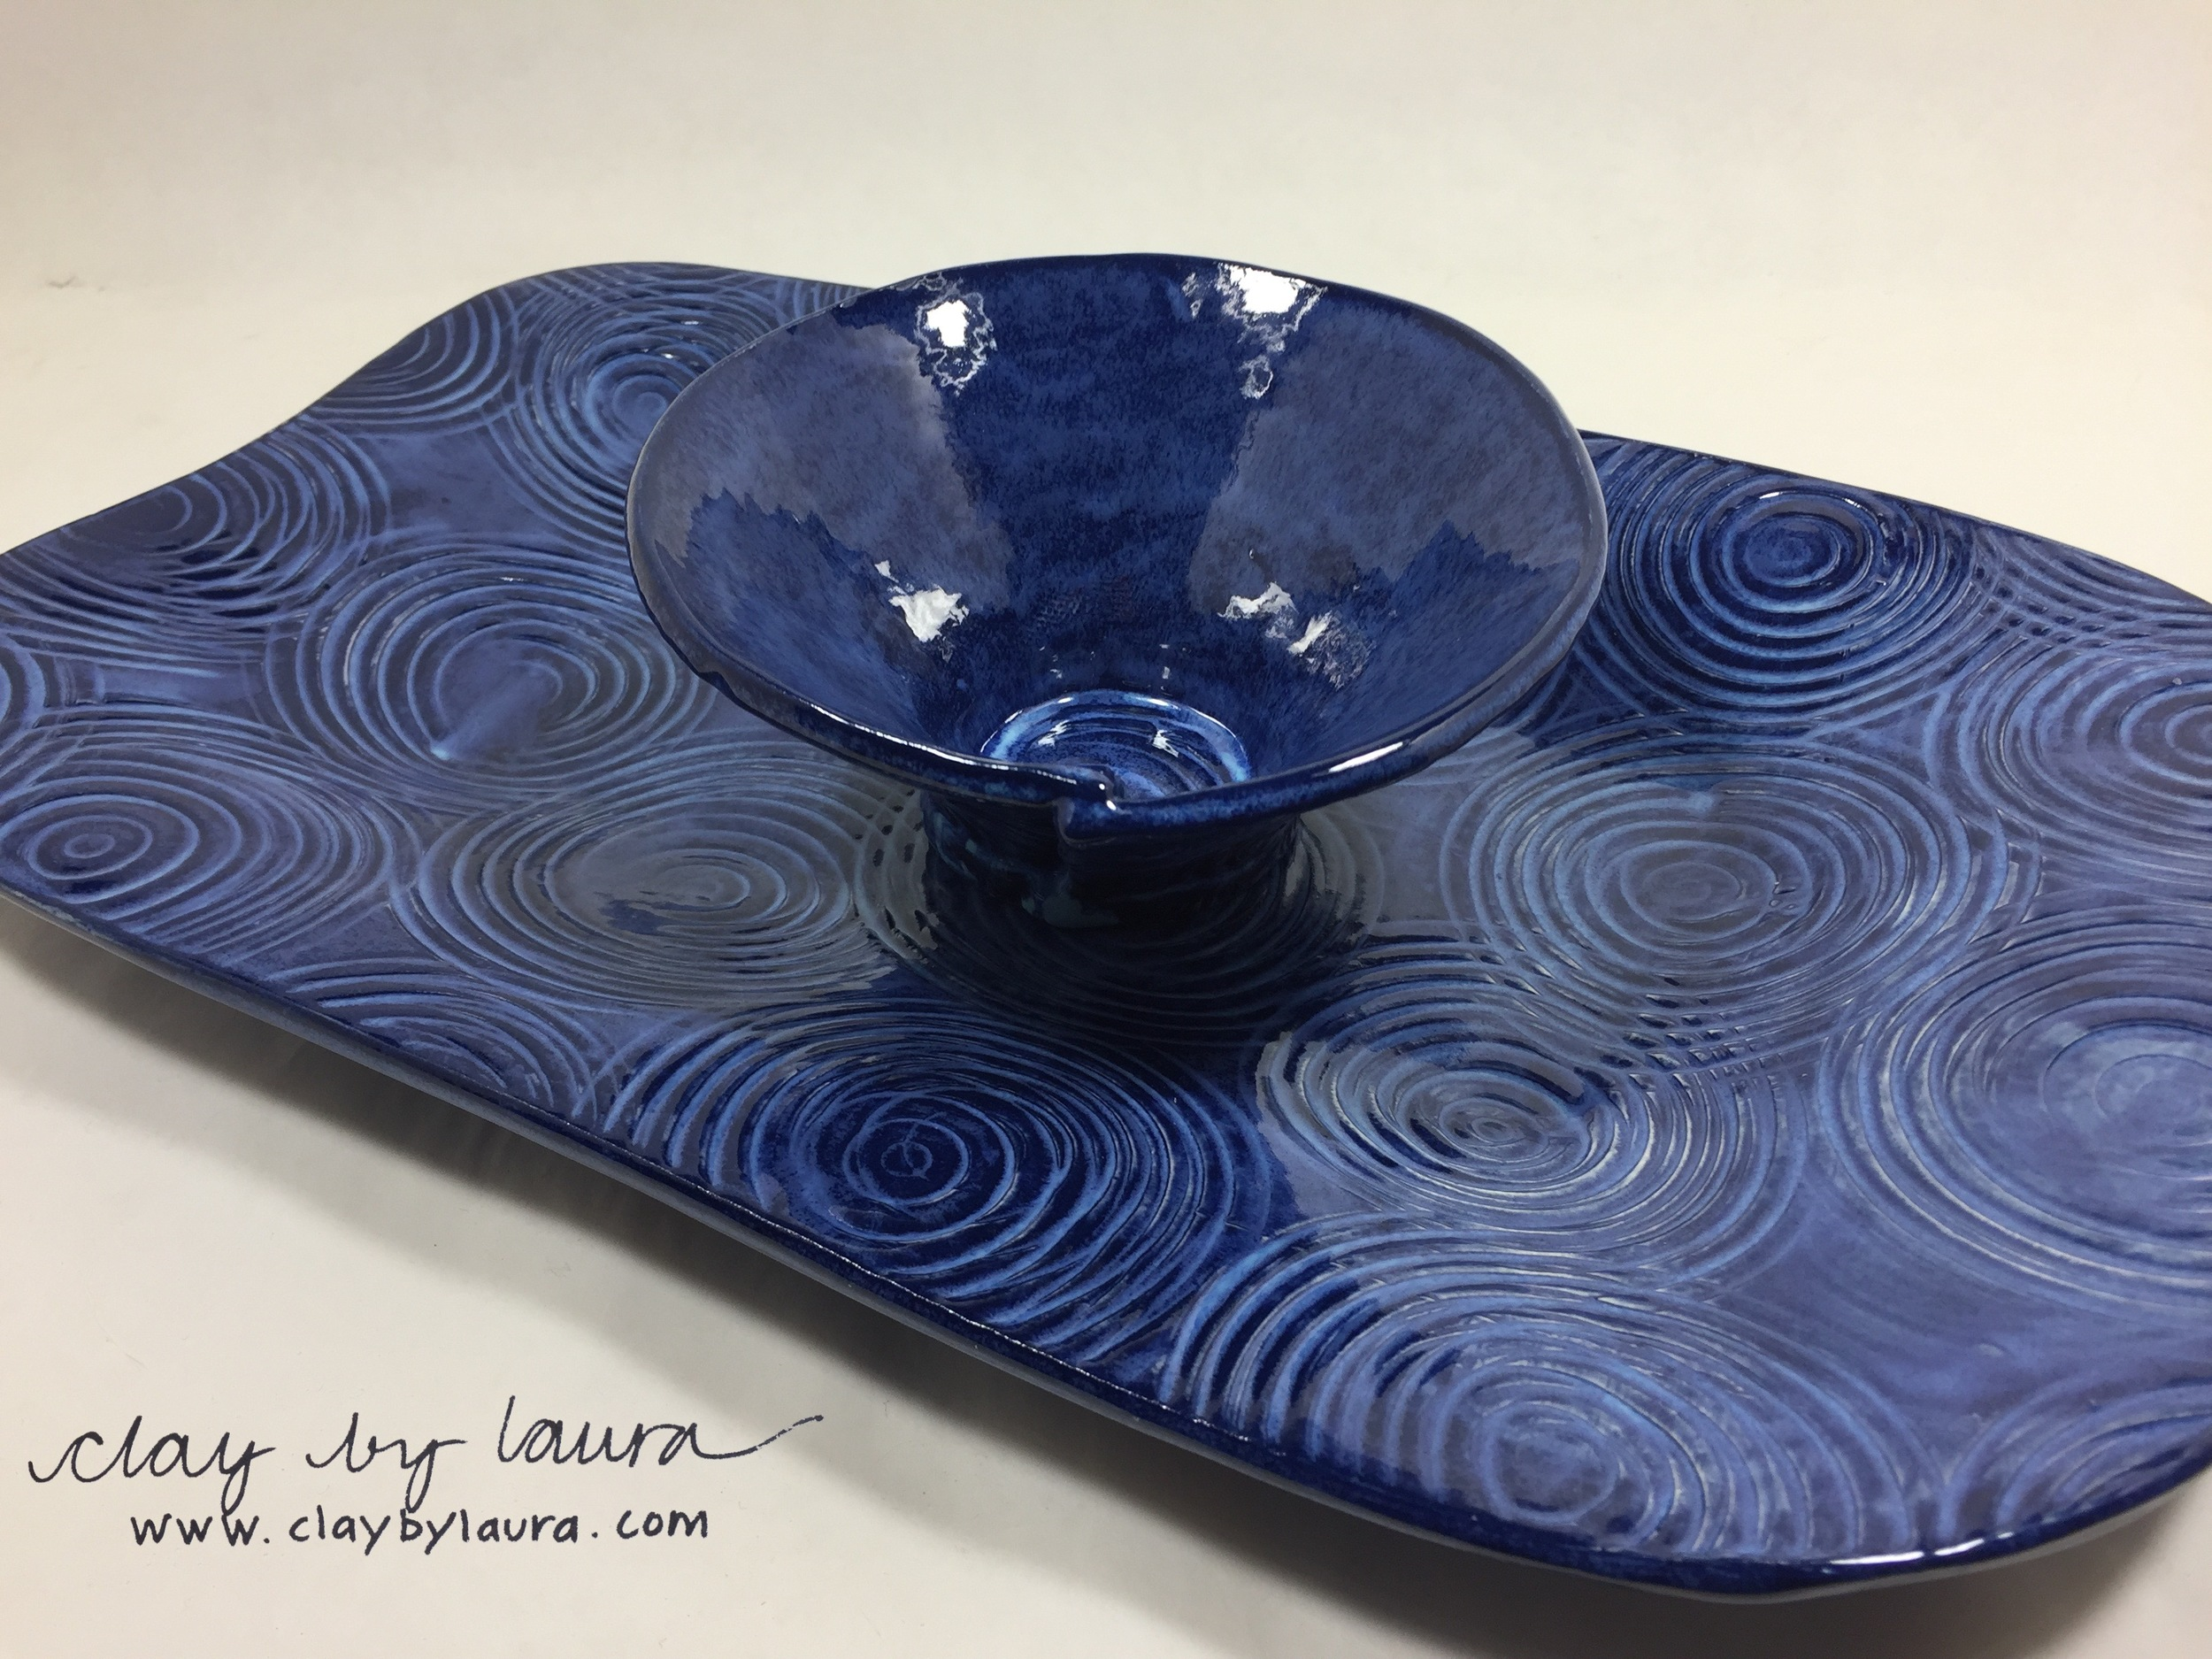 I have made this popular tray and bowl set for many years. Each one is a unique combination of pattern and color. The serving bowl has evolved over the years into the current circle form. If a customer sees a piece of mine that has been sold at a show or is out of stock in my inventory, I can easily make a new one!